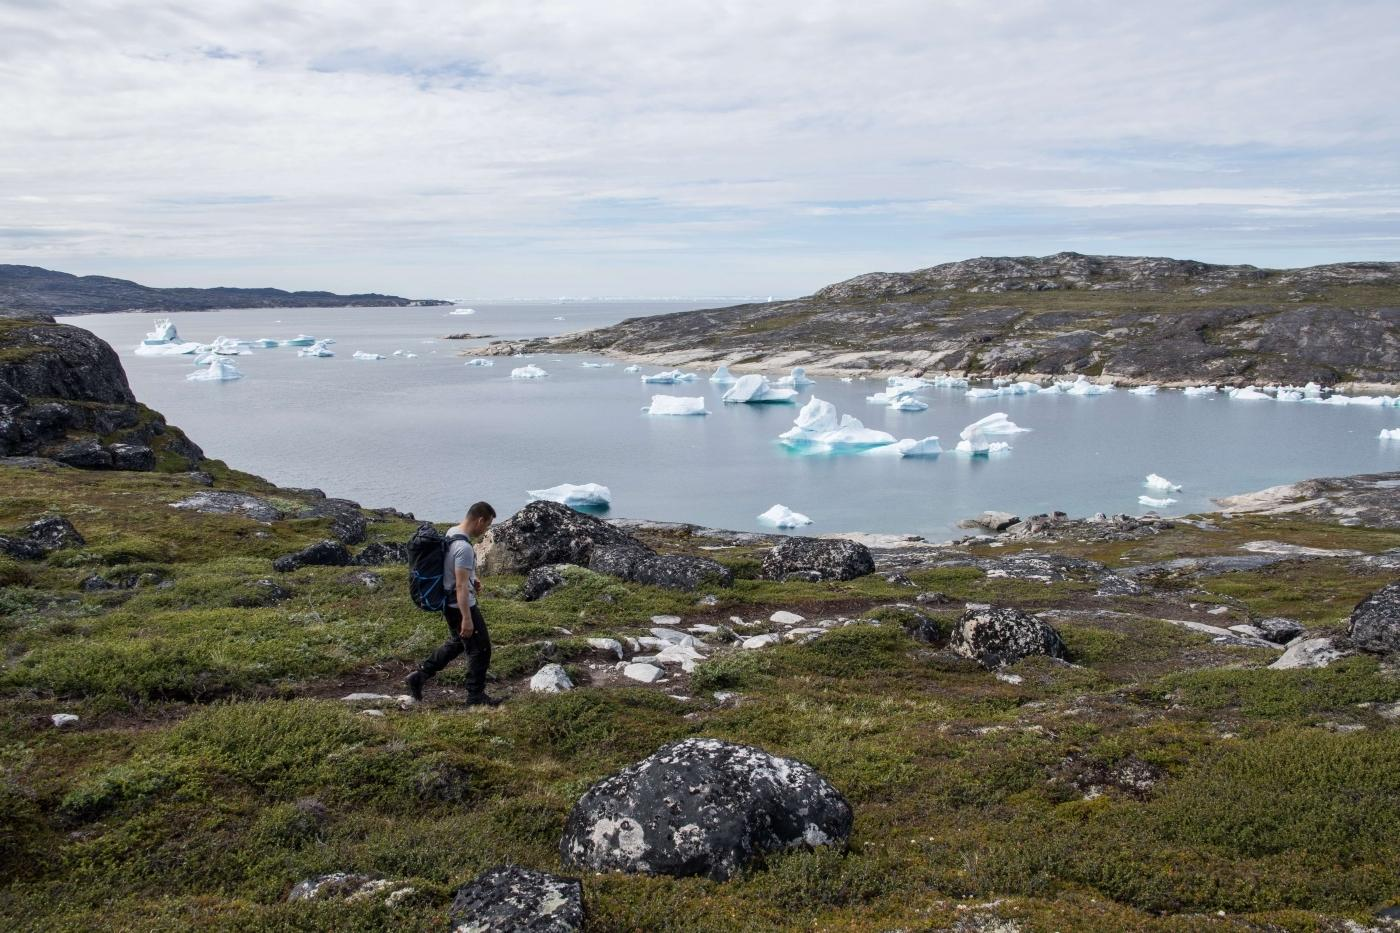 Hiking in Greenland in summer with green landscaping and icebergs. Photo by Guide to Greenland